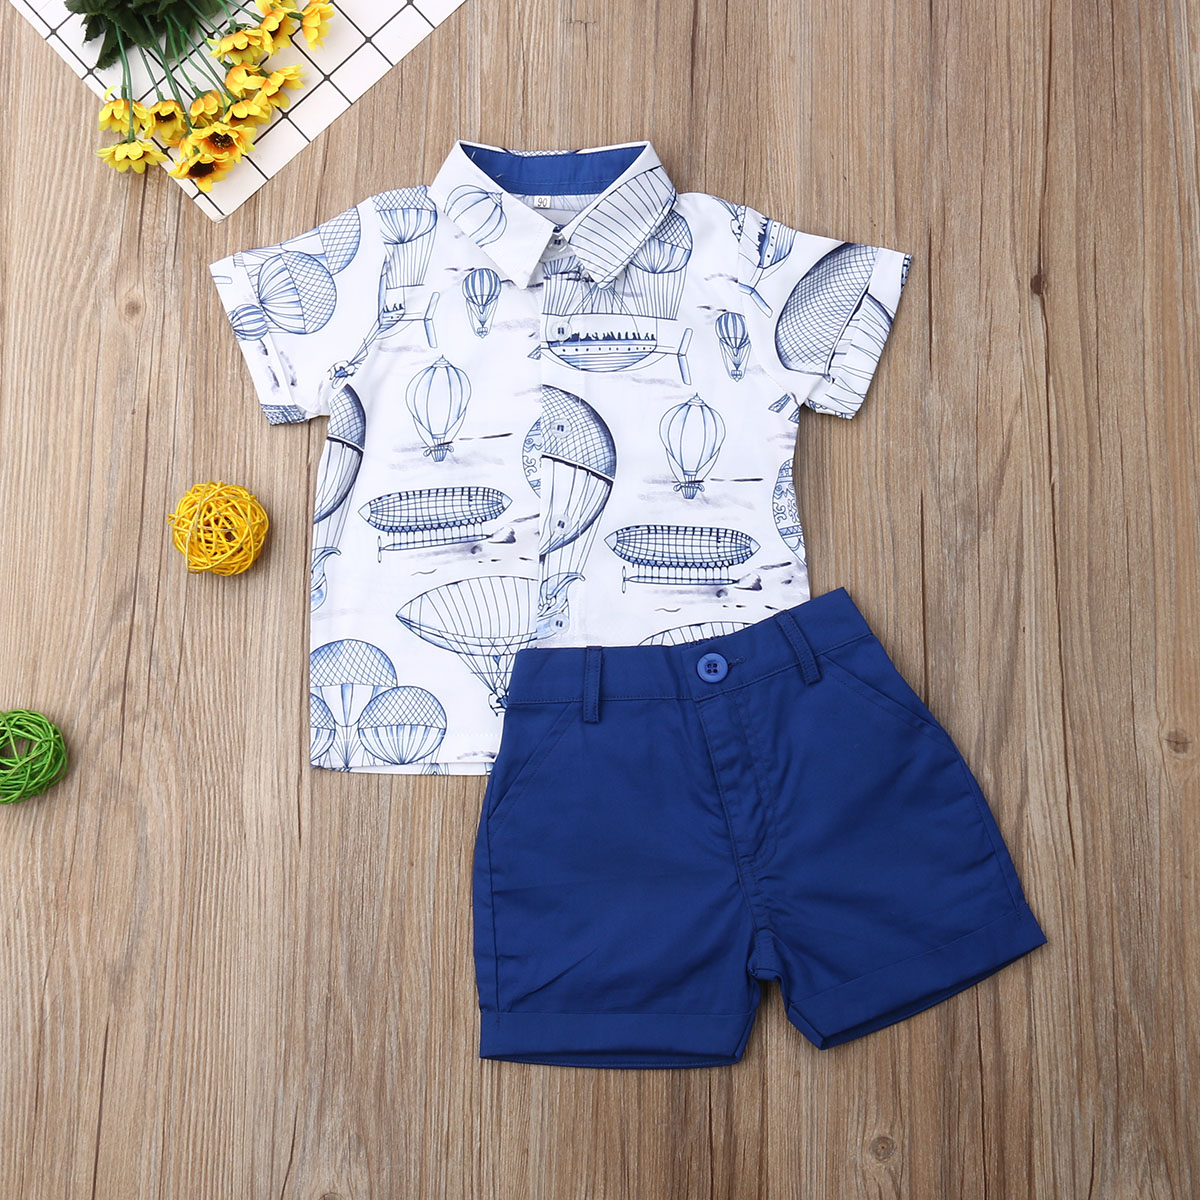 Pudcoco Summer Toddler Baby Boy Clothes Hot Air Balloon Camouflage Print Shirt Tops Short Pants 2Pcs Outfits Clothes Summer